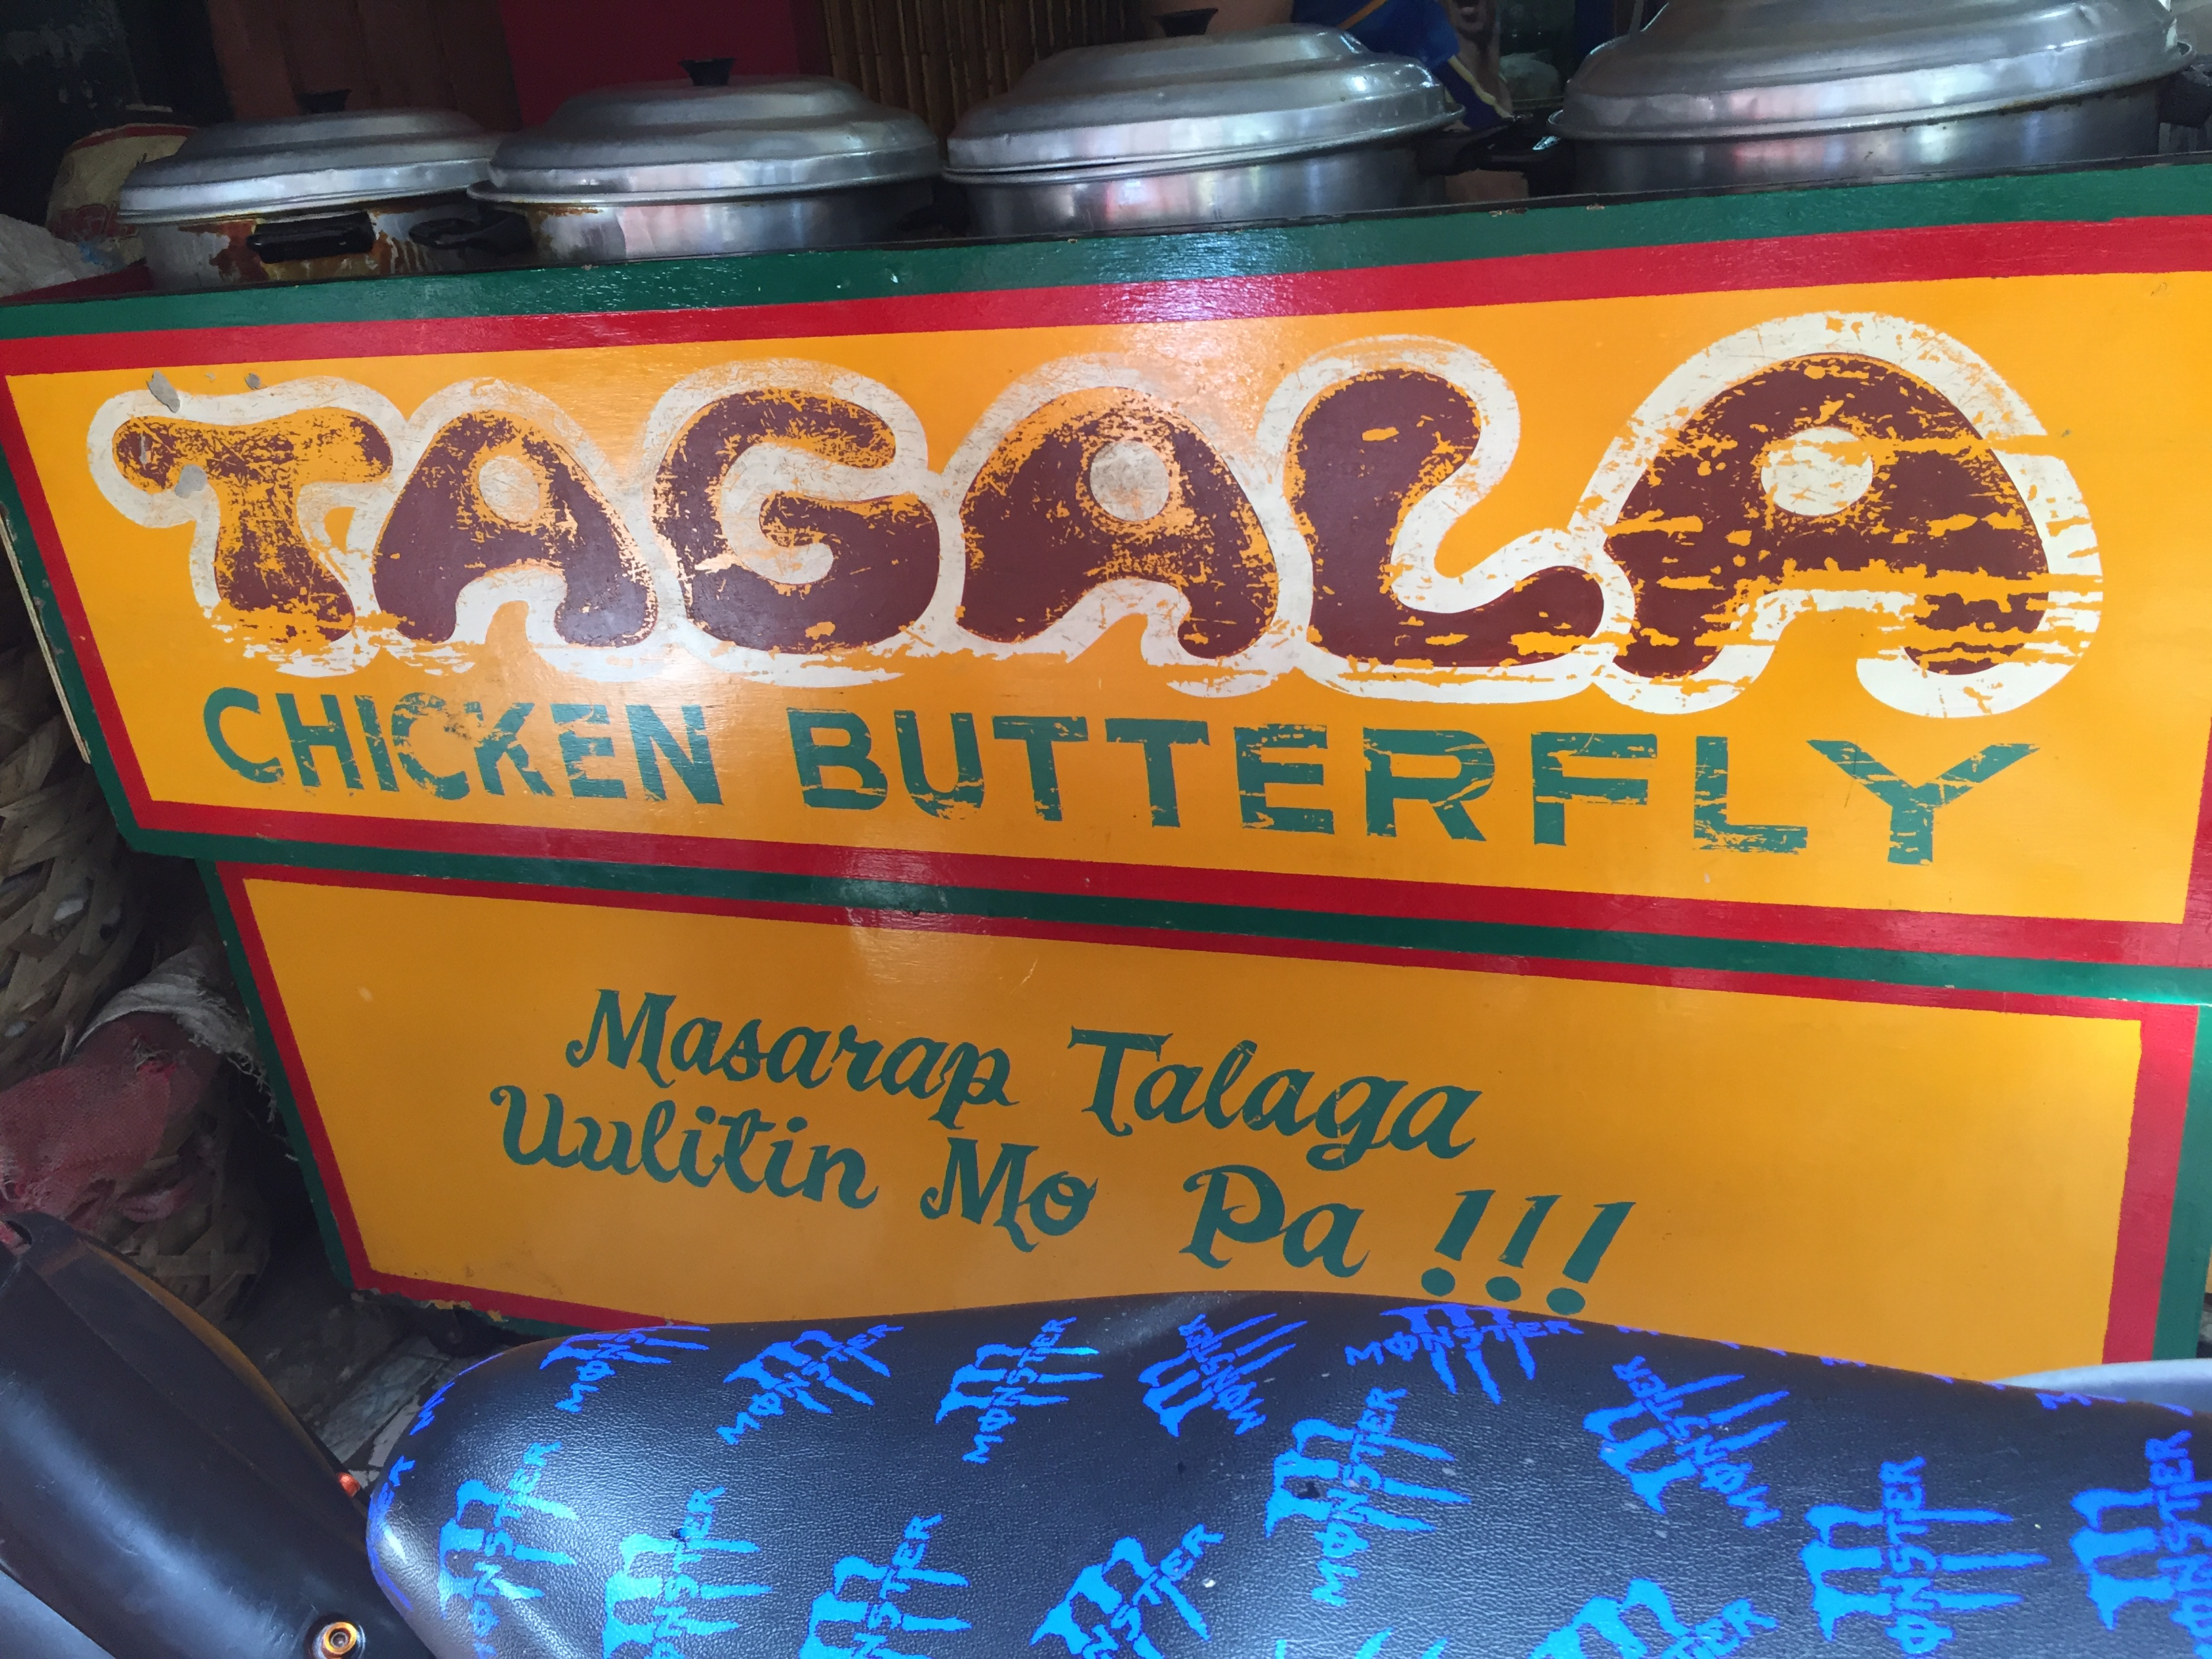 TAGALA ChickenButterfly